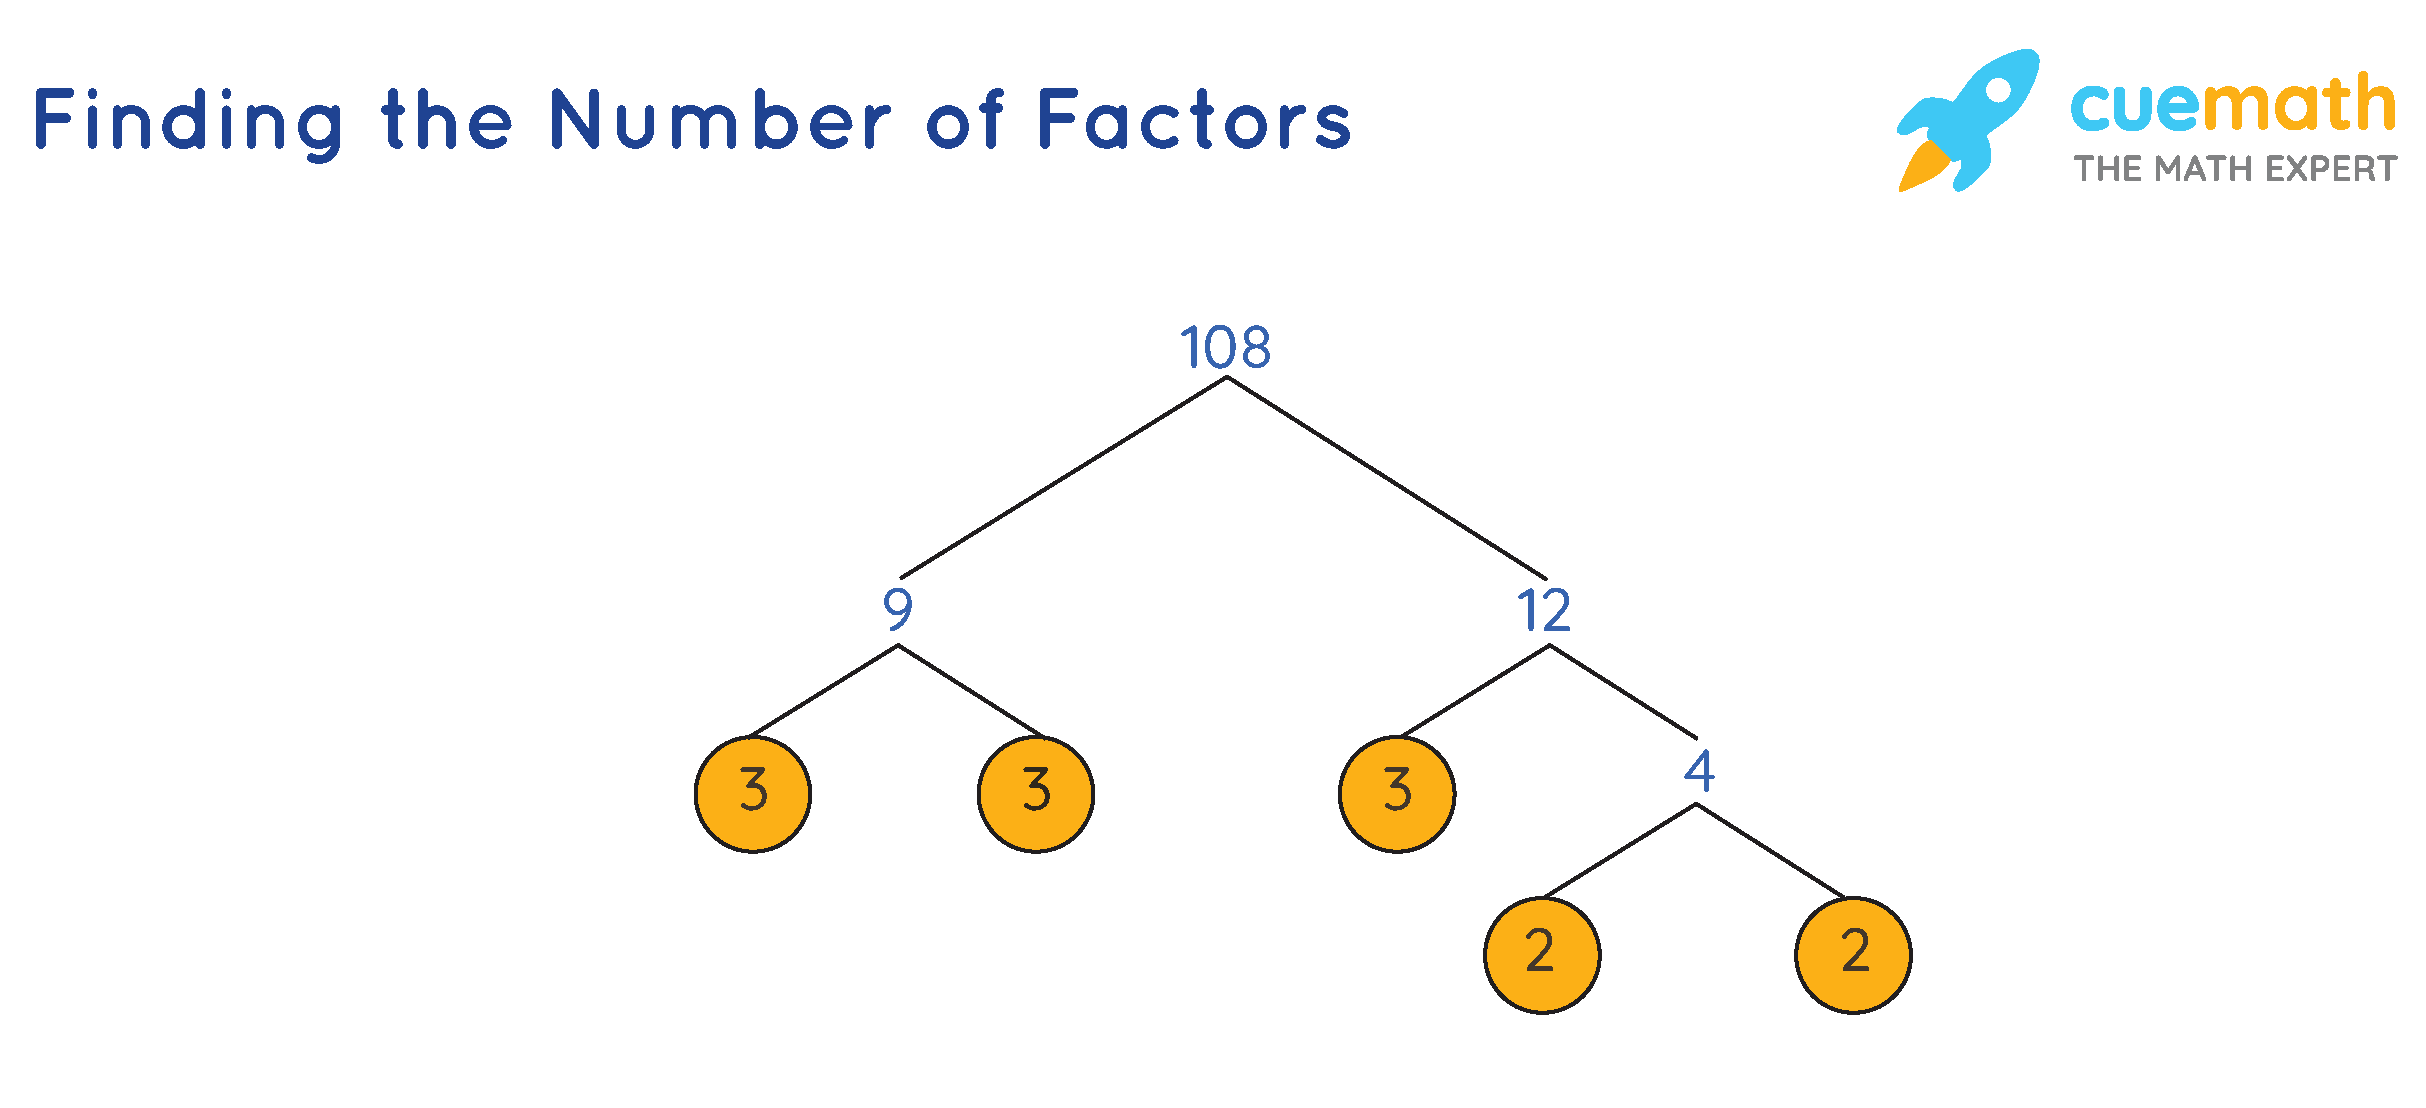 Finding the Number of Factors